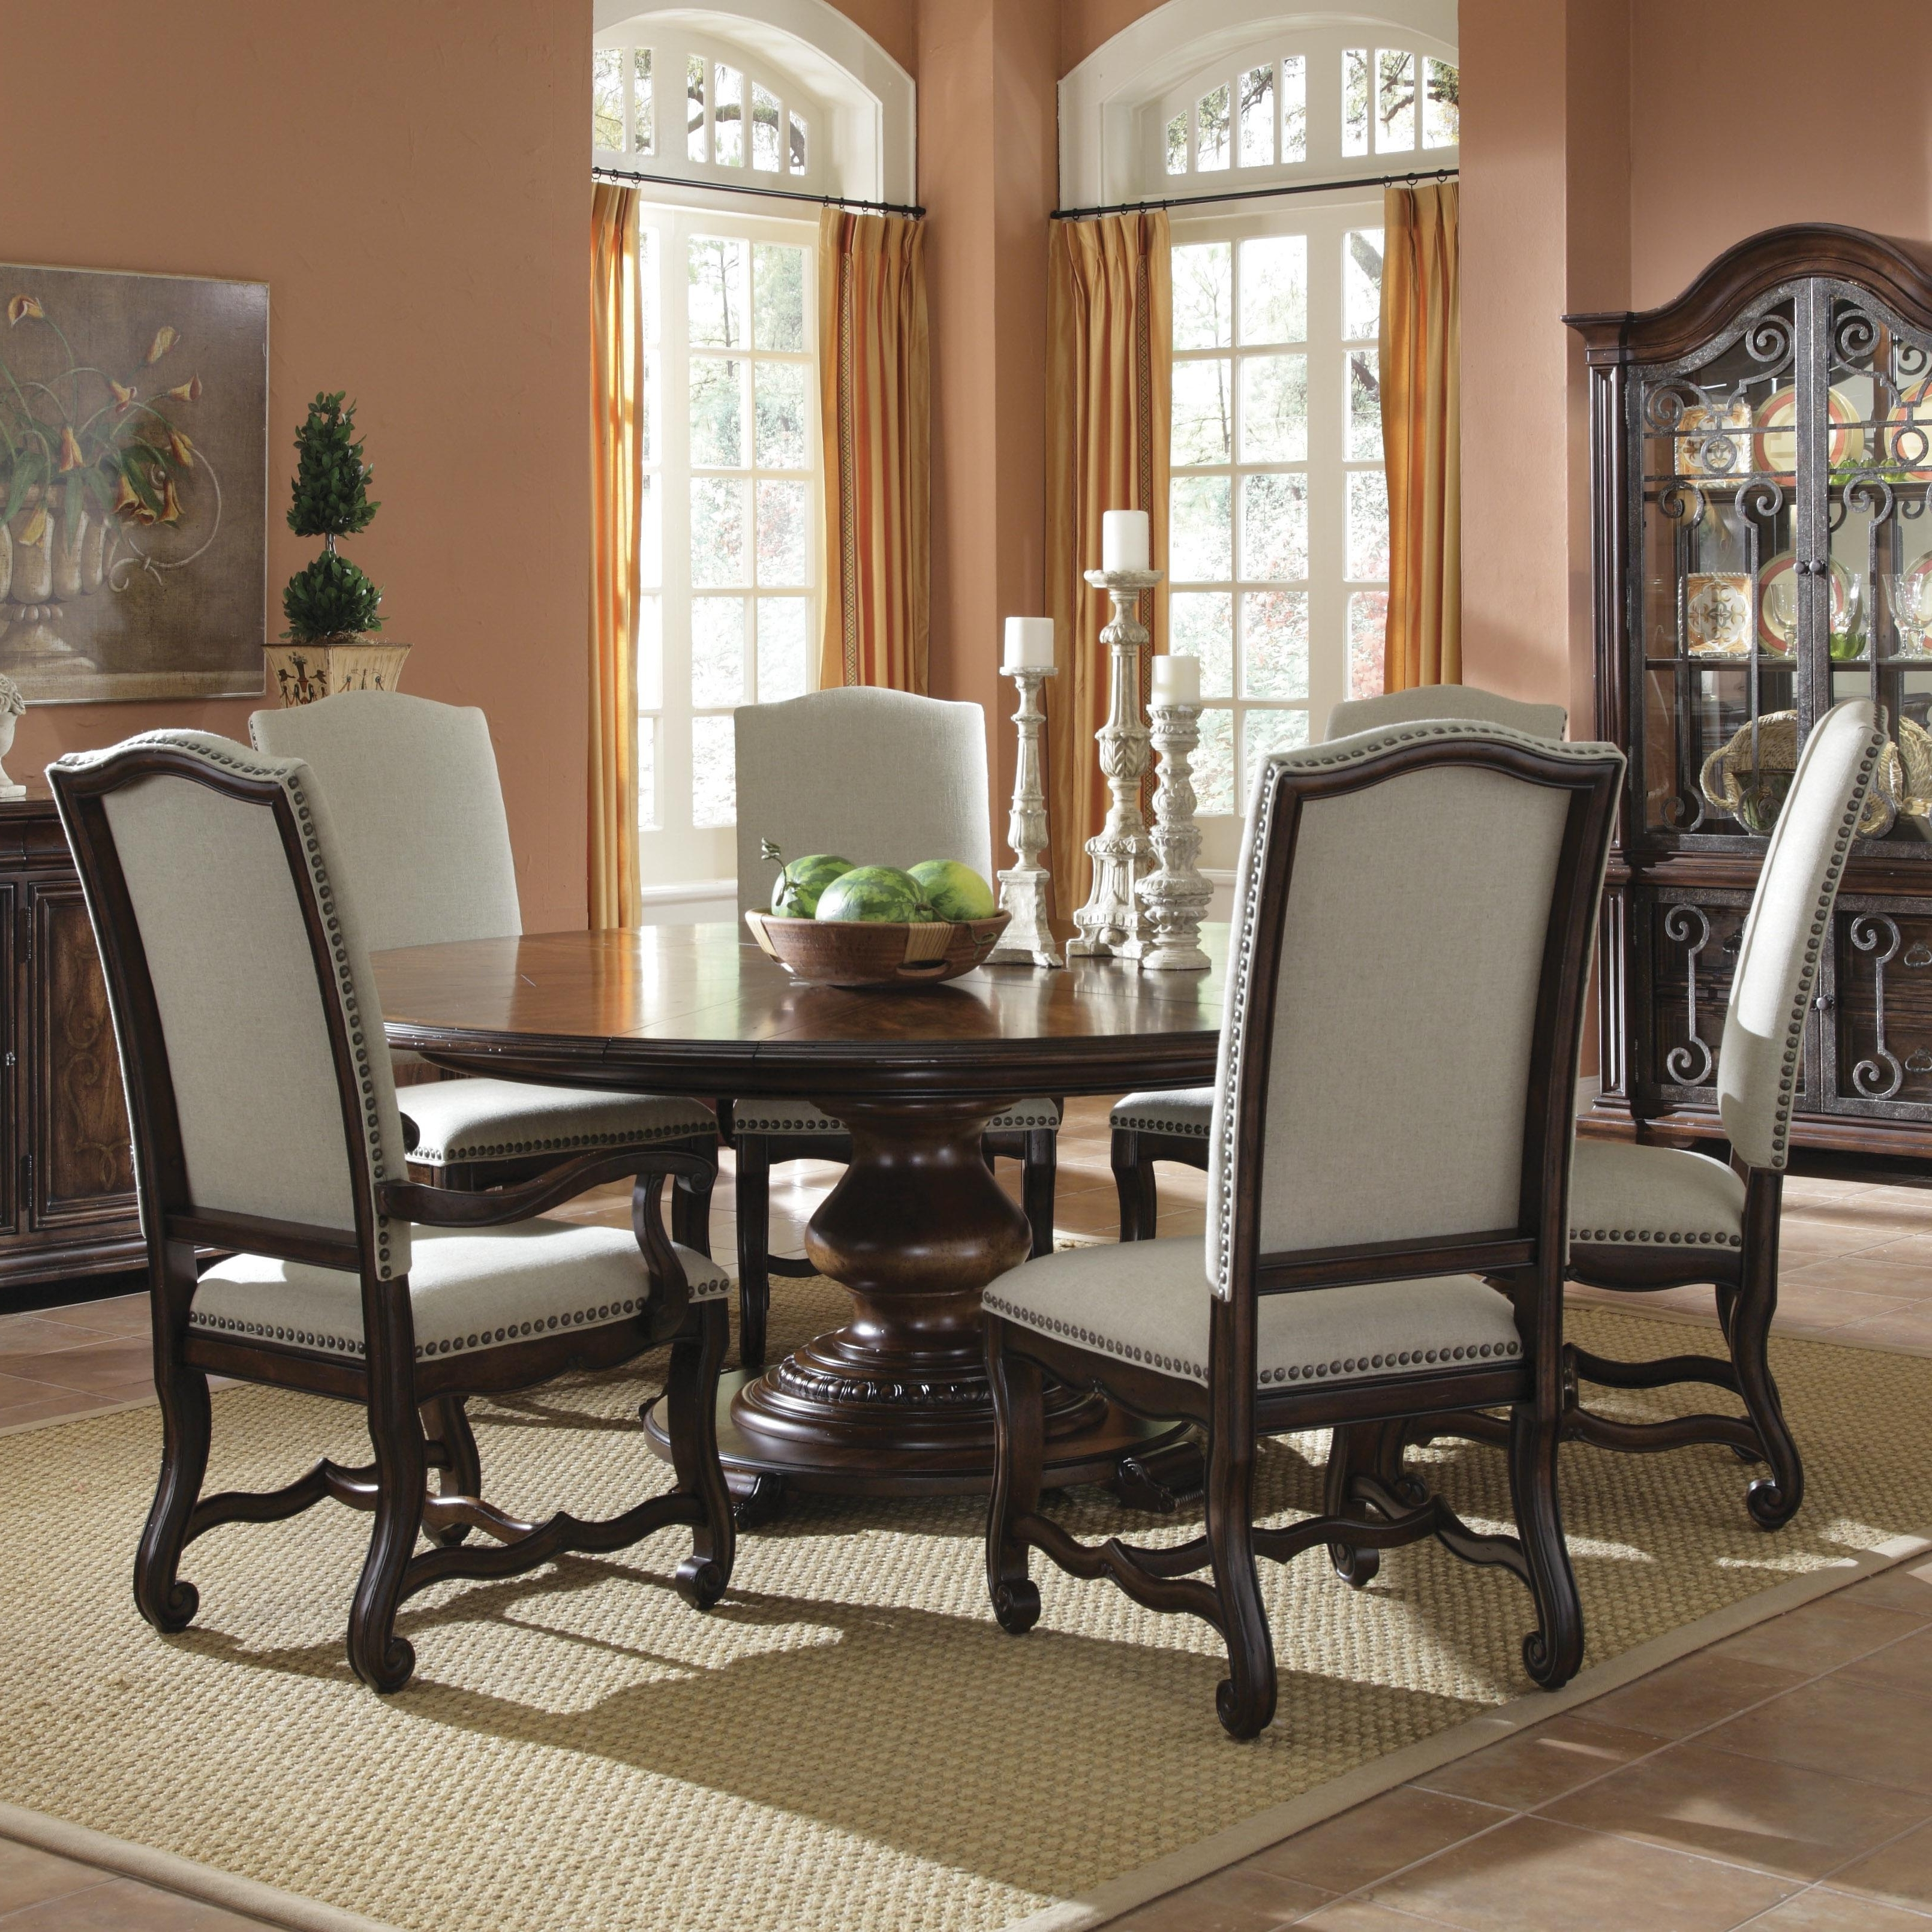 6 Seater Round Dining Tables Within Best And Newest Decorating Nice Dining Table Set 6 Seater Formal Room Ideas Casual (Gallery 21 of 25)